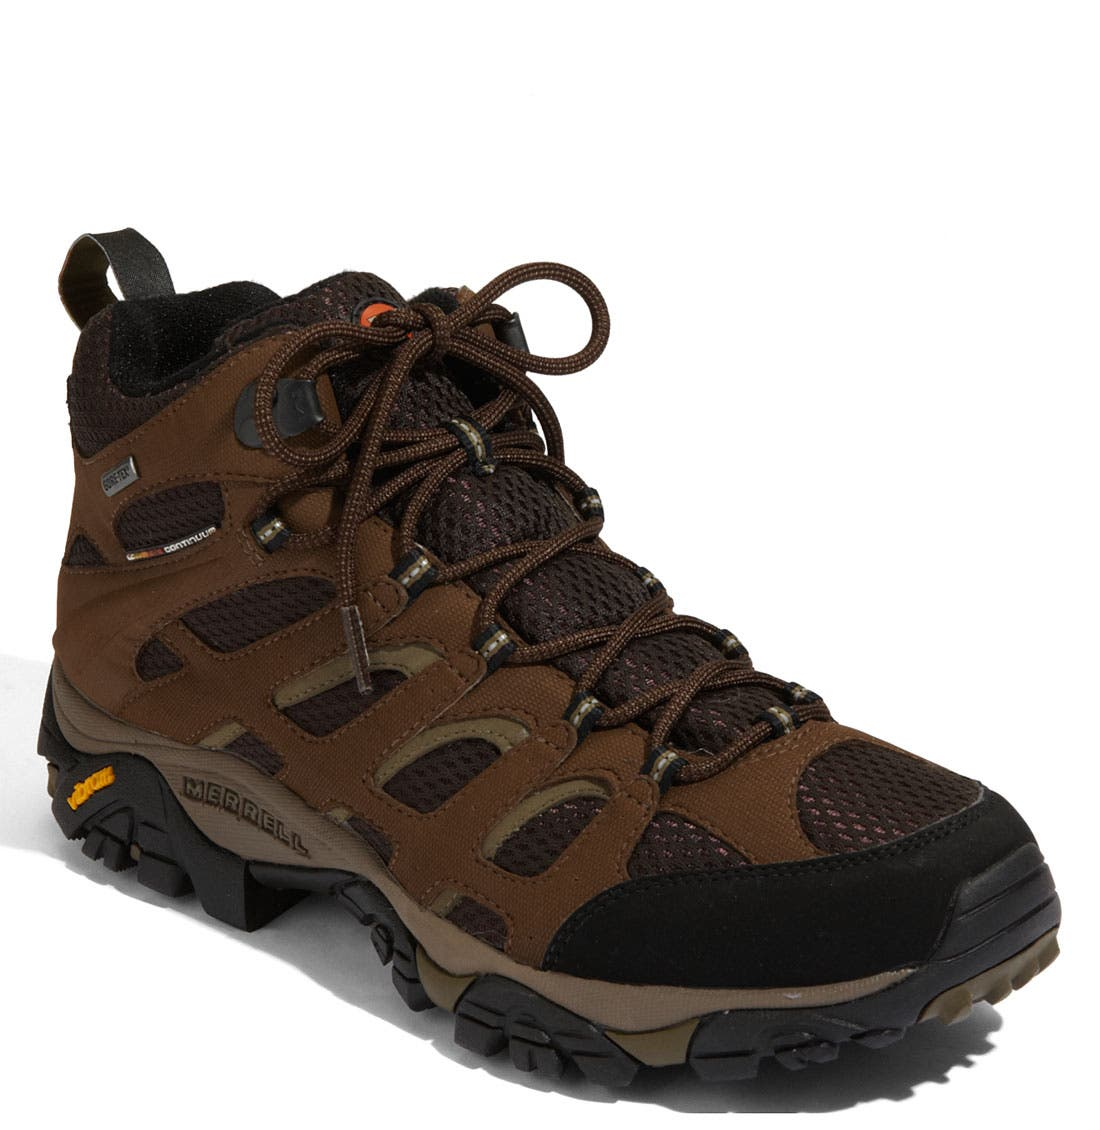 Alternate Image 1 Selected - Merrell 'Moab Mid Gore-Tex® XCR' Hiking Boot (Men)